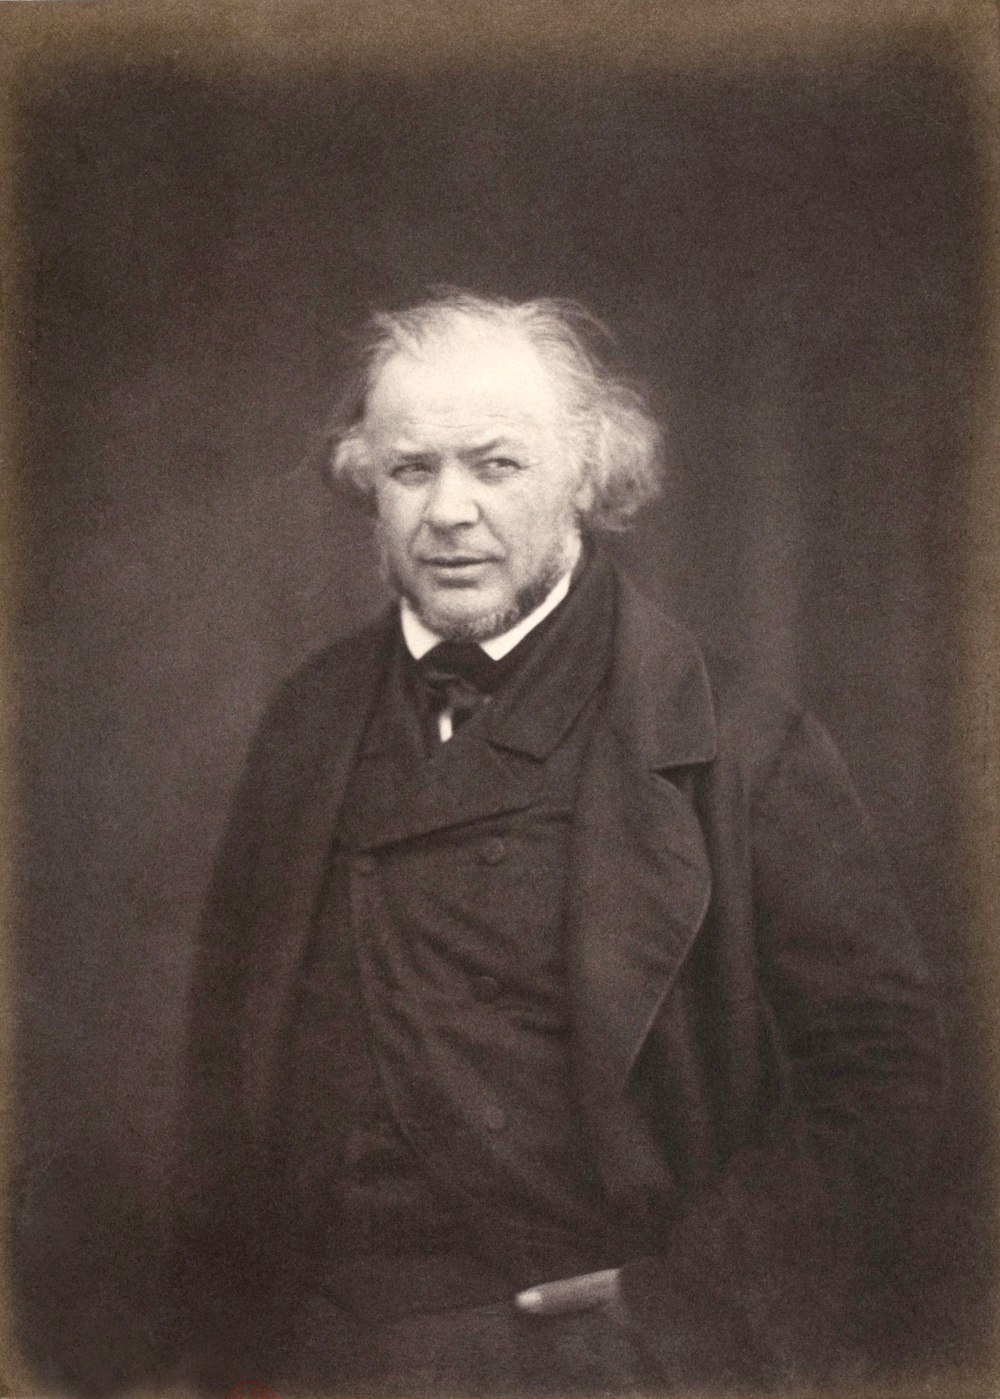 Photograph of Honoré Daumier by Victor Laisné or Lainé c. 1850. PD Source: Wikimedia Commons